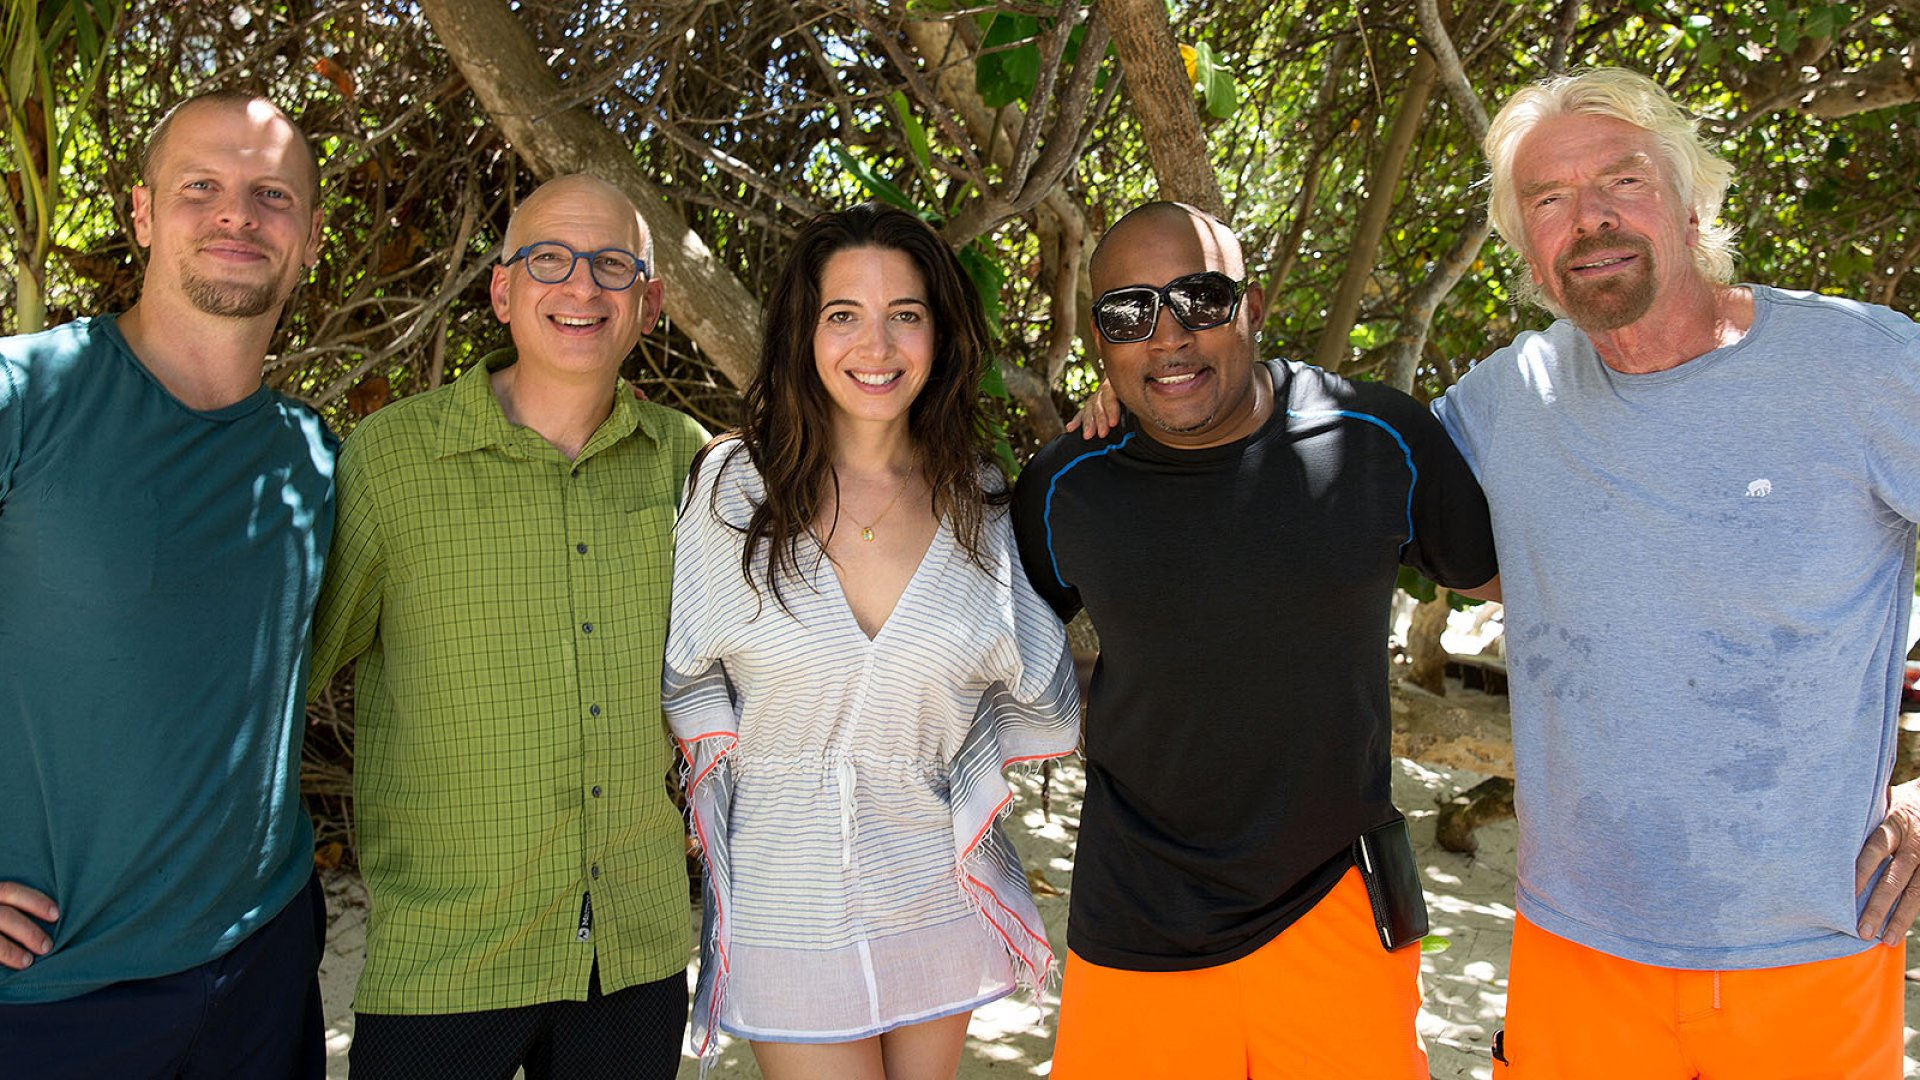 Left to right: Tim Ferriss, Seth Godin, Marie Forleo, Daymond John, and Richard Branson on Necker Island, where the winners of Shopify's 2015 Build a Business competition recently spent five days with them.